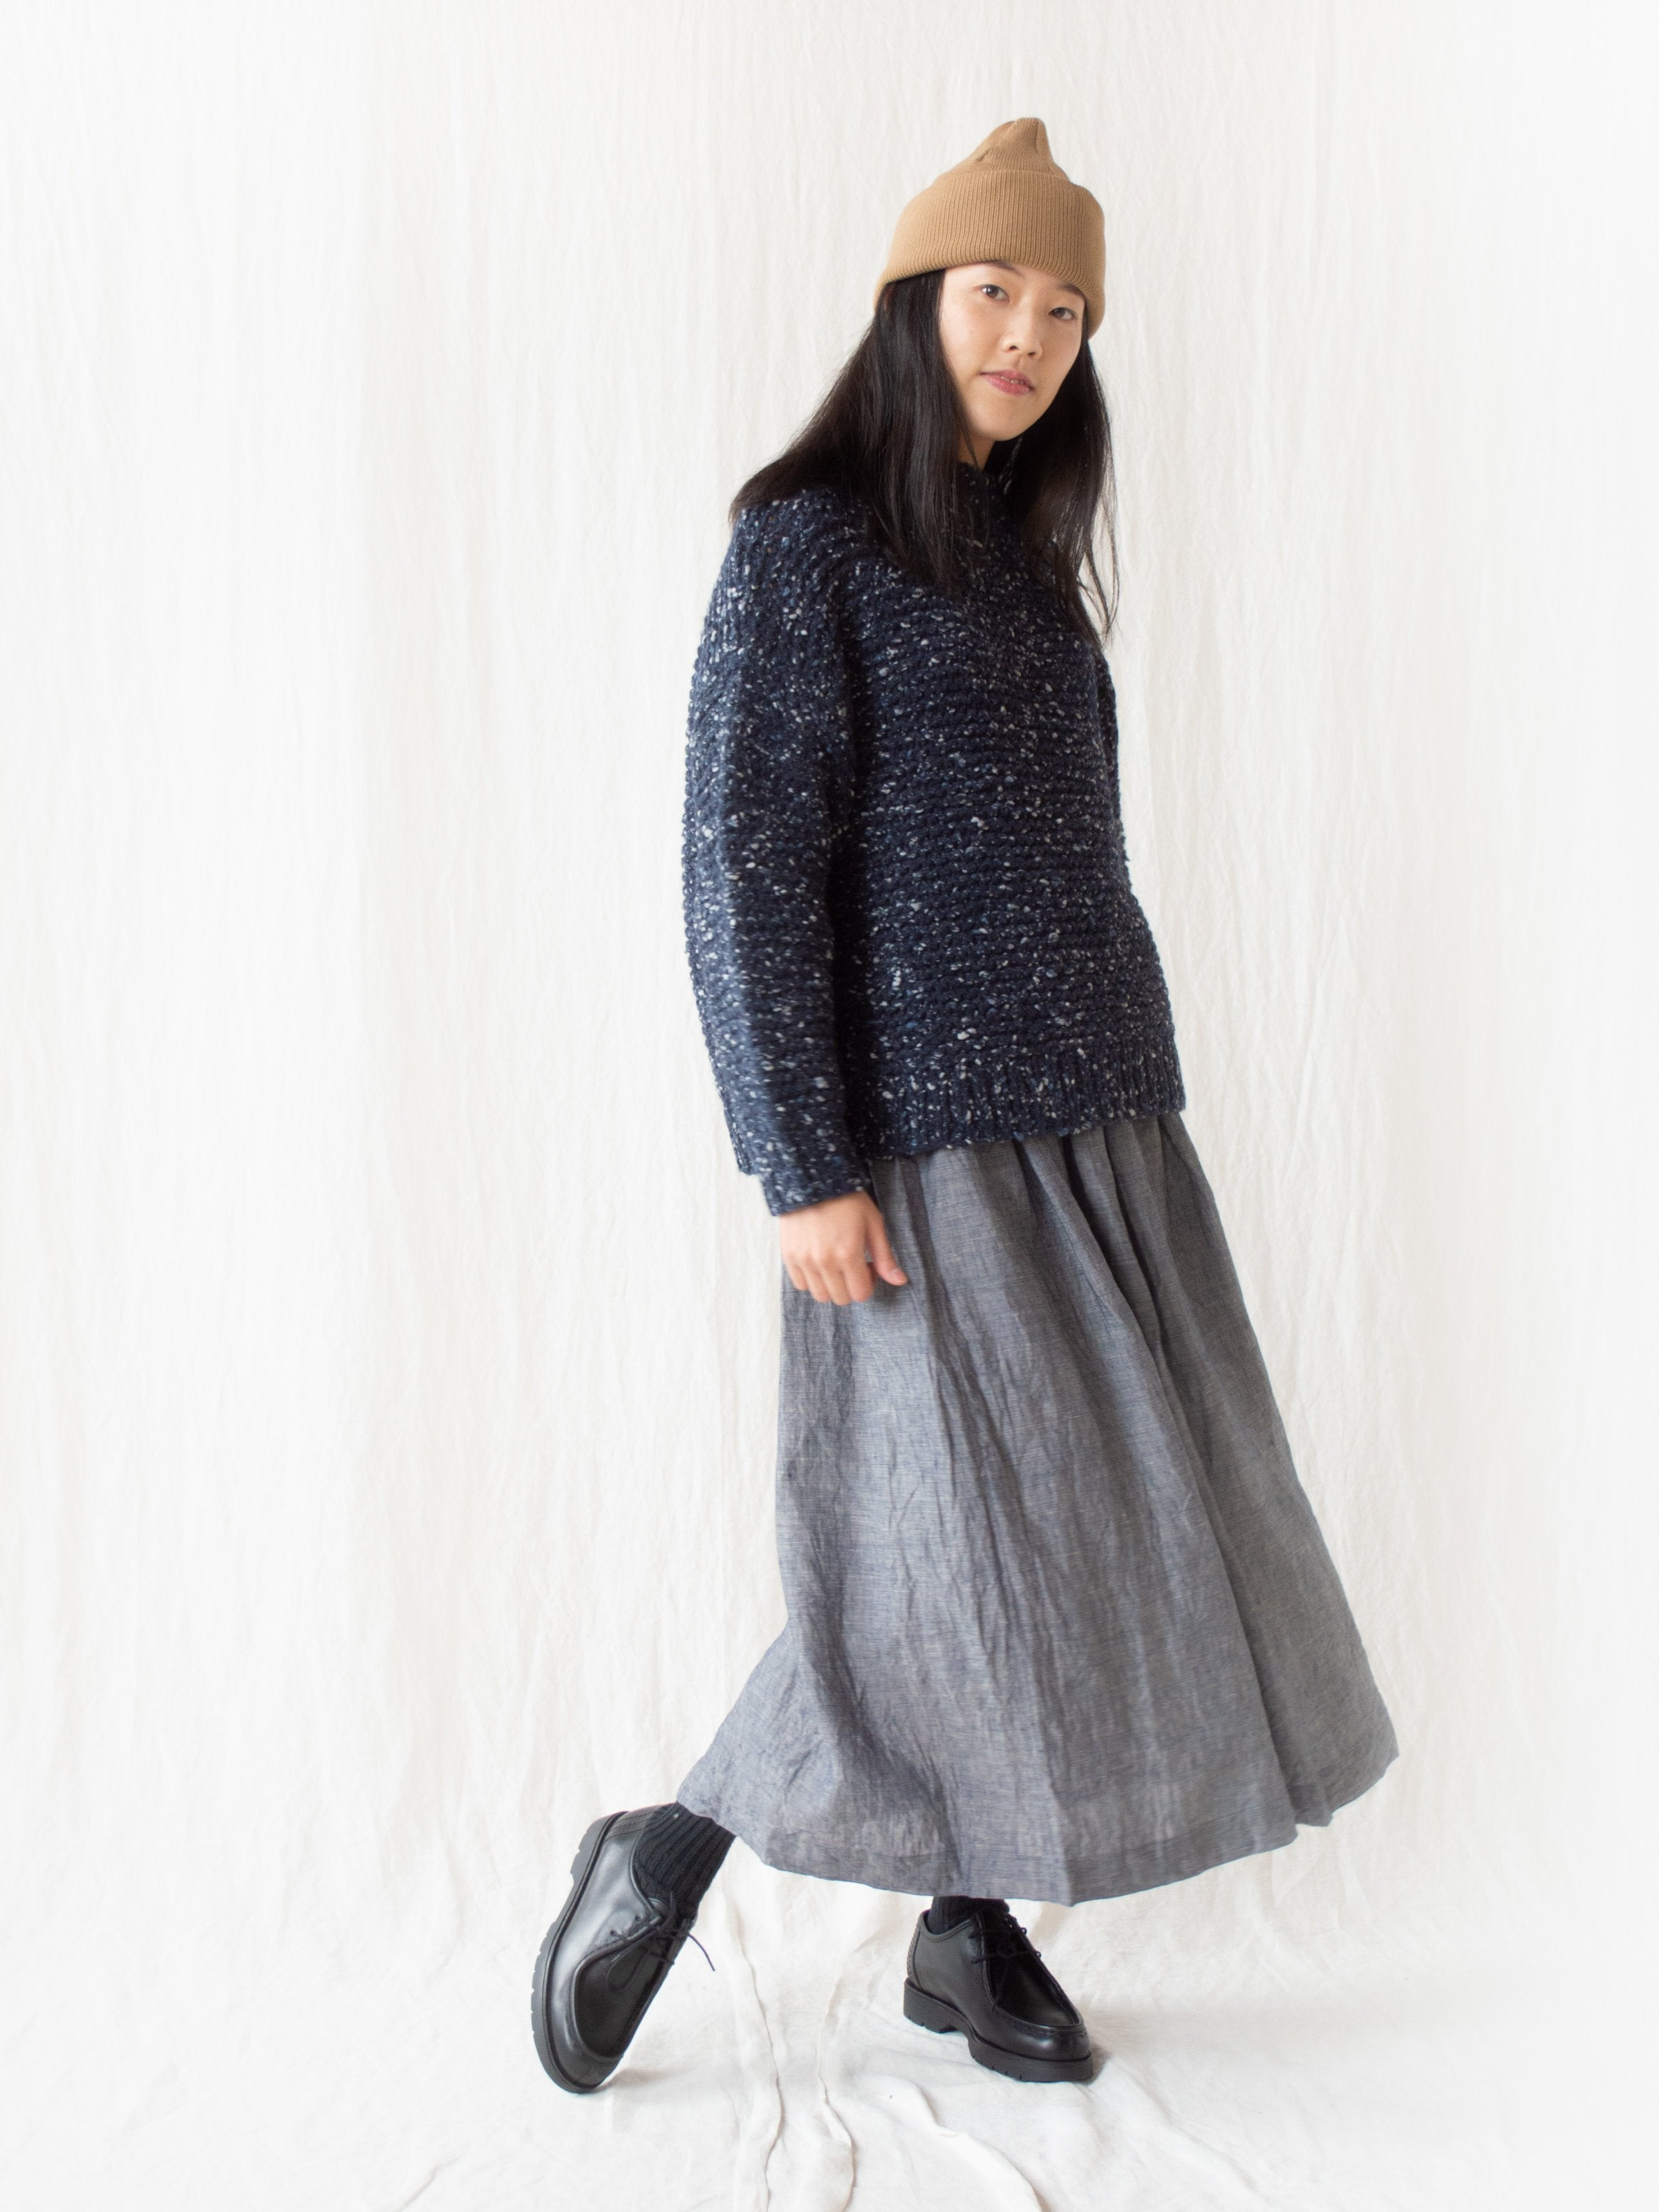 Namu Shop - Ichi Antiquites Wool Angora Knit - Navy